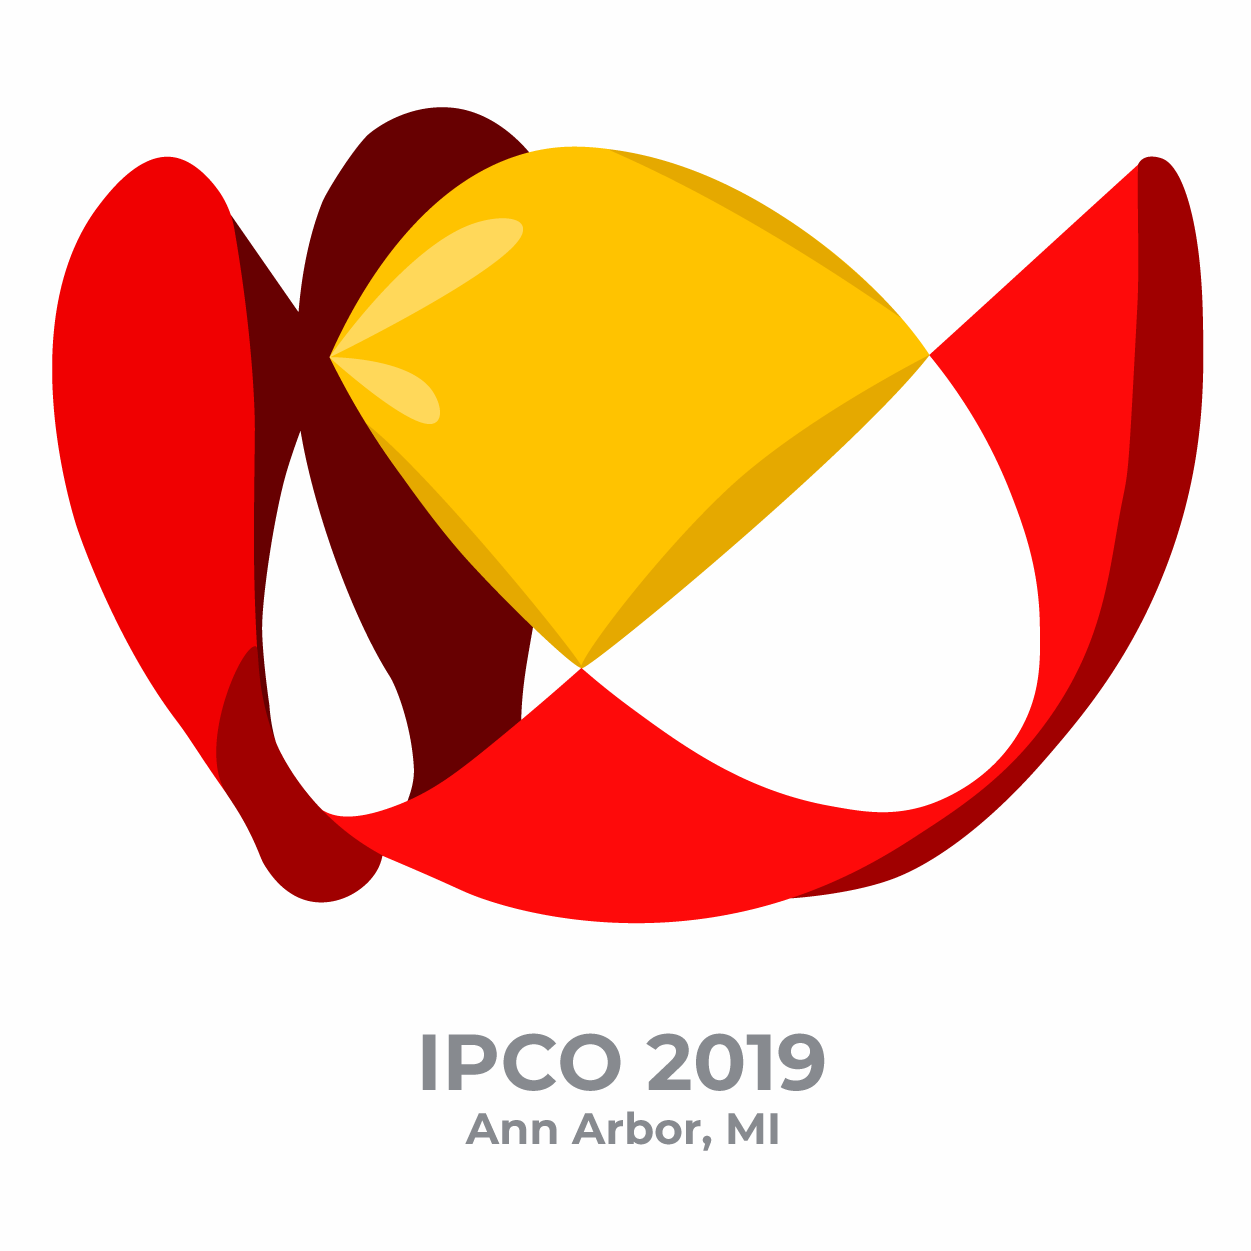 IPCO 2019 text paired with 3D mathematical graphic